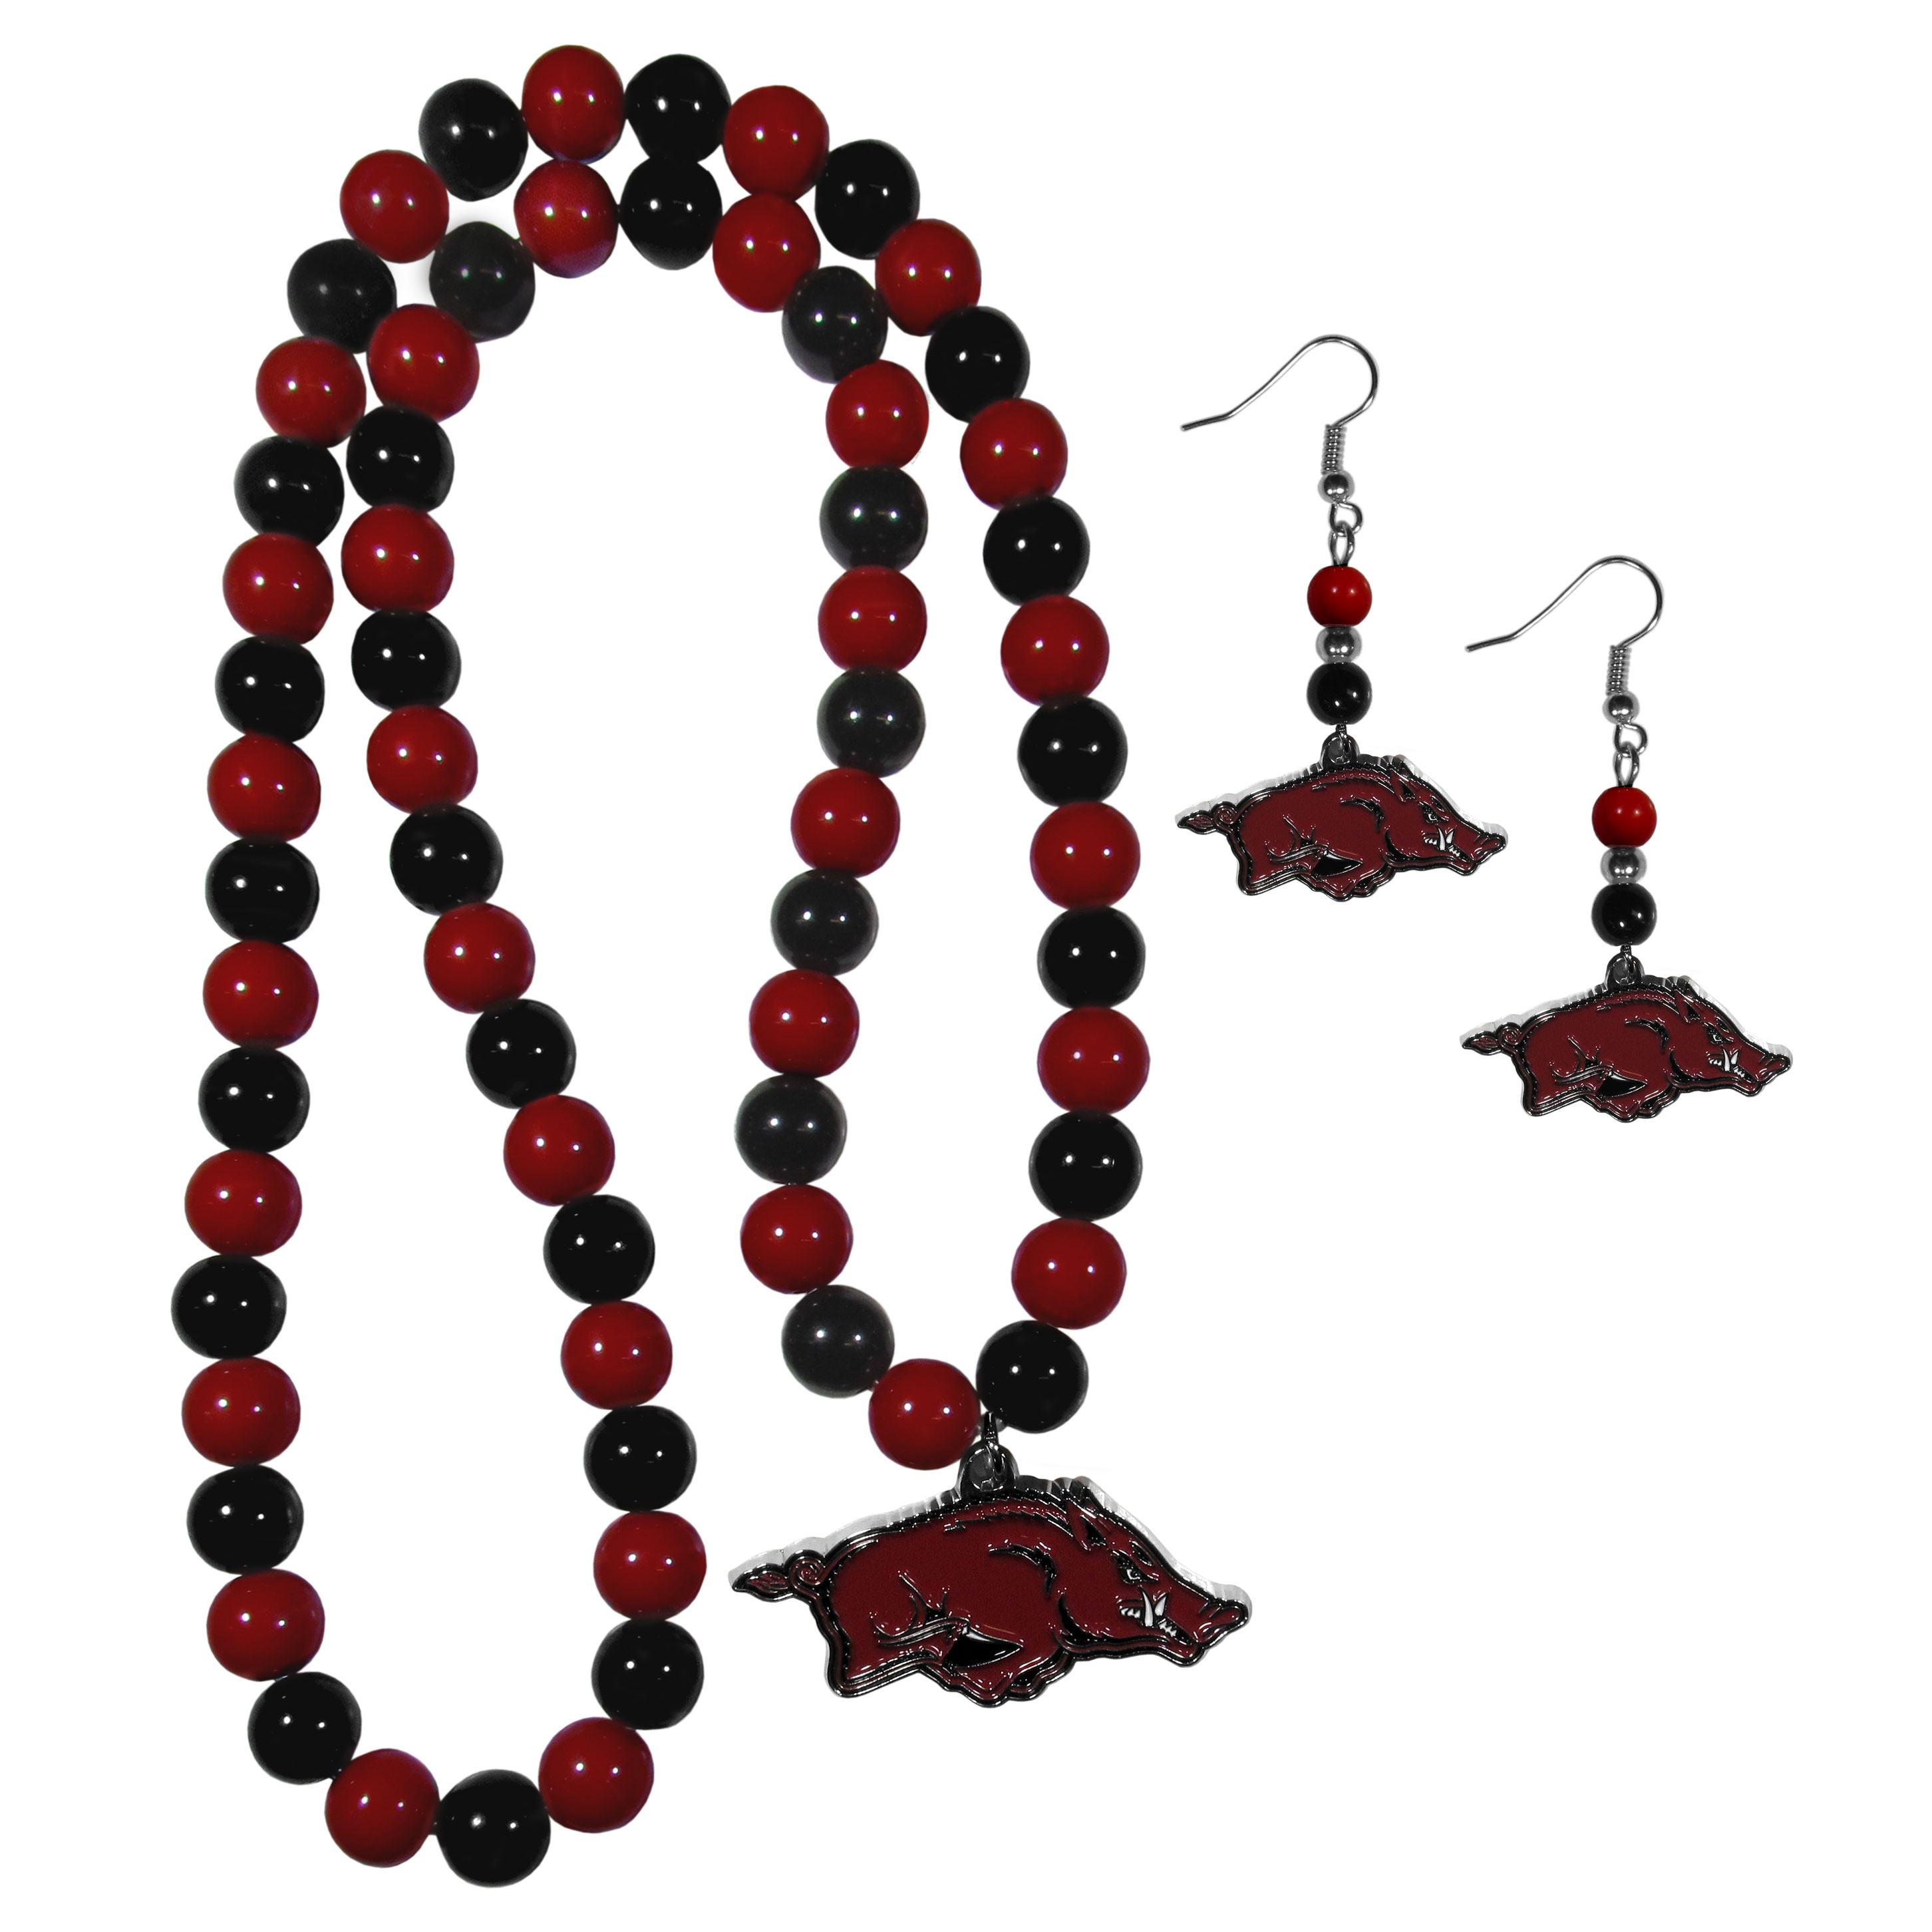 Arkansas Razorbacks Fan Bead Earrings and Necklace Set - These fun and colorful Arkansas Razorbacks fan bead jewelry pieces are an eyecatching way to show off your team spirit. The earrings feature hypoallergenic, nickel free fishhook post and 2 team colored beads with a beautifully carved team charm to finish this attractive dangle look. The mathcing bracelet has alternating team colored beads on a stretch cord and features a matching team charm.